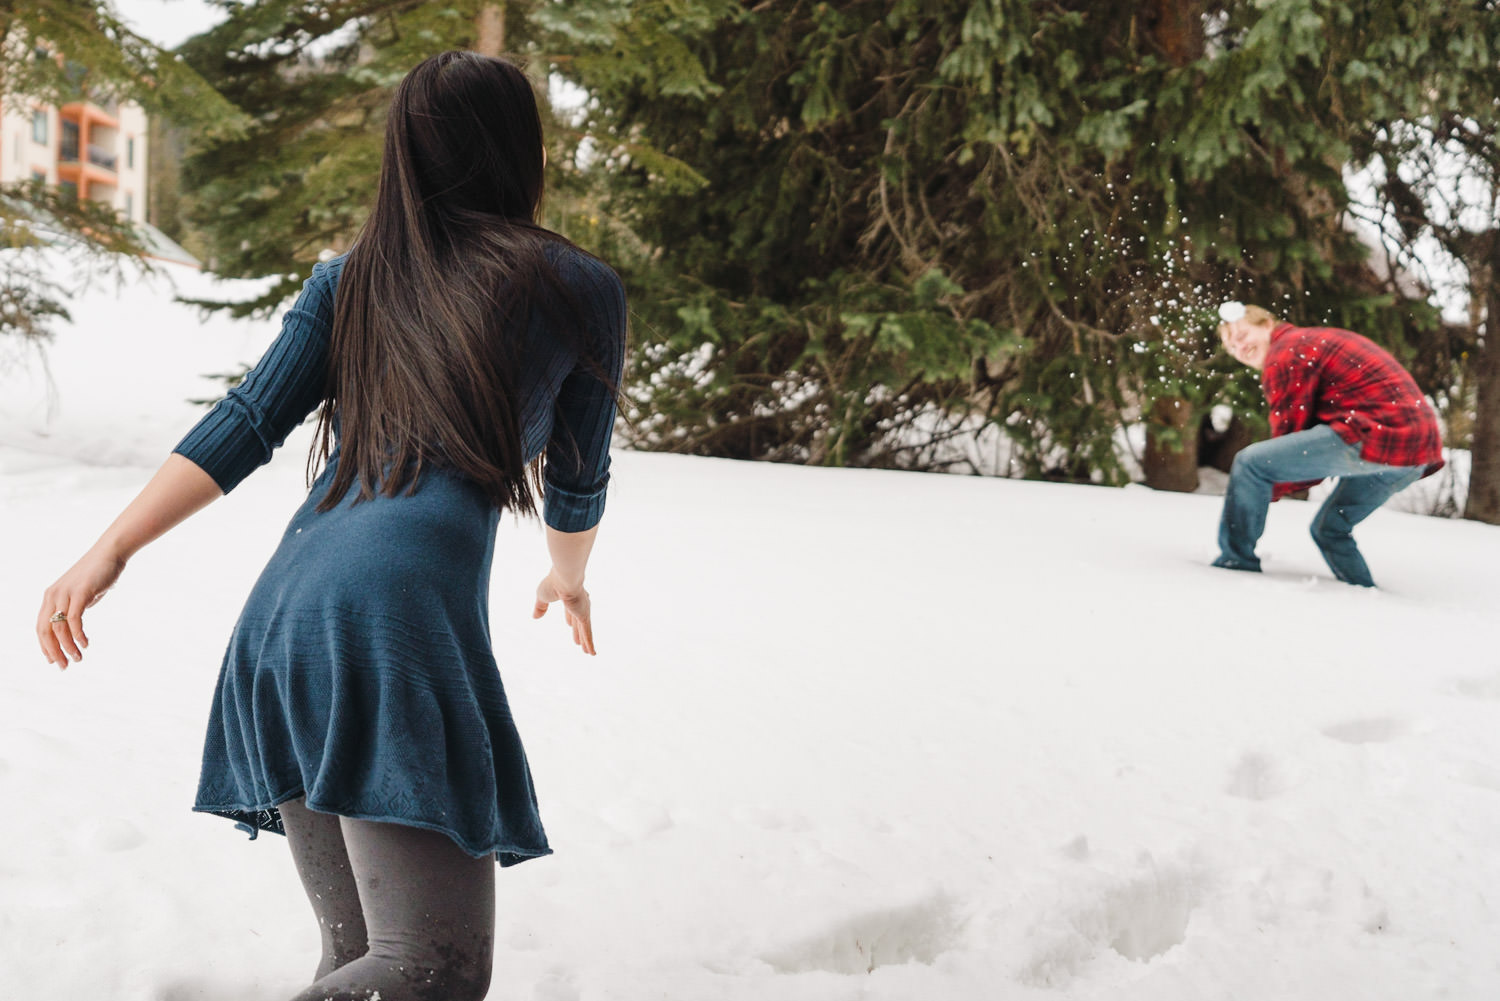 Engagement session at Solitude couple having snowball fight photo